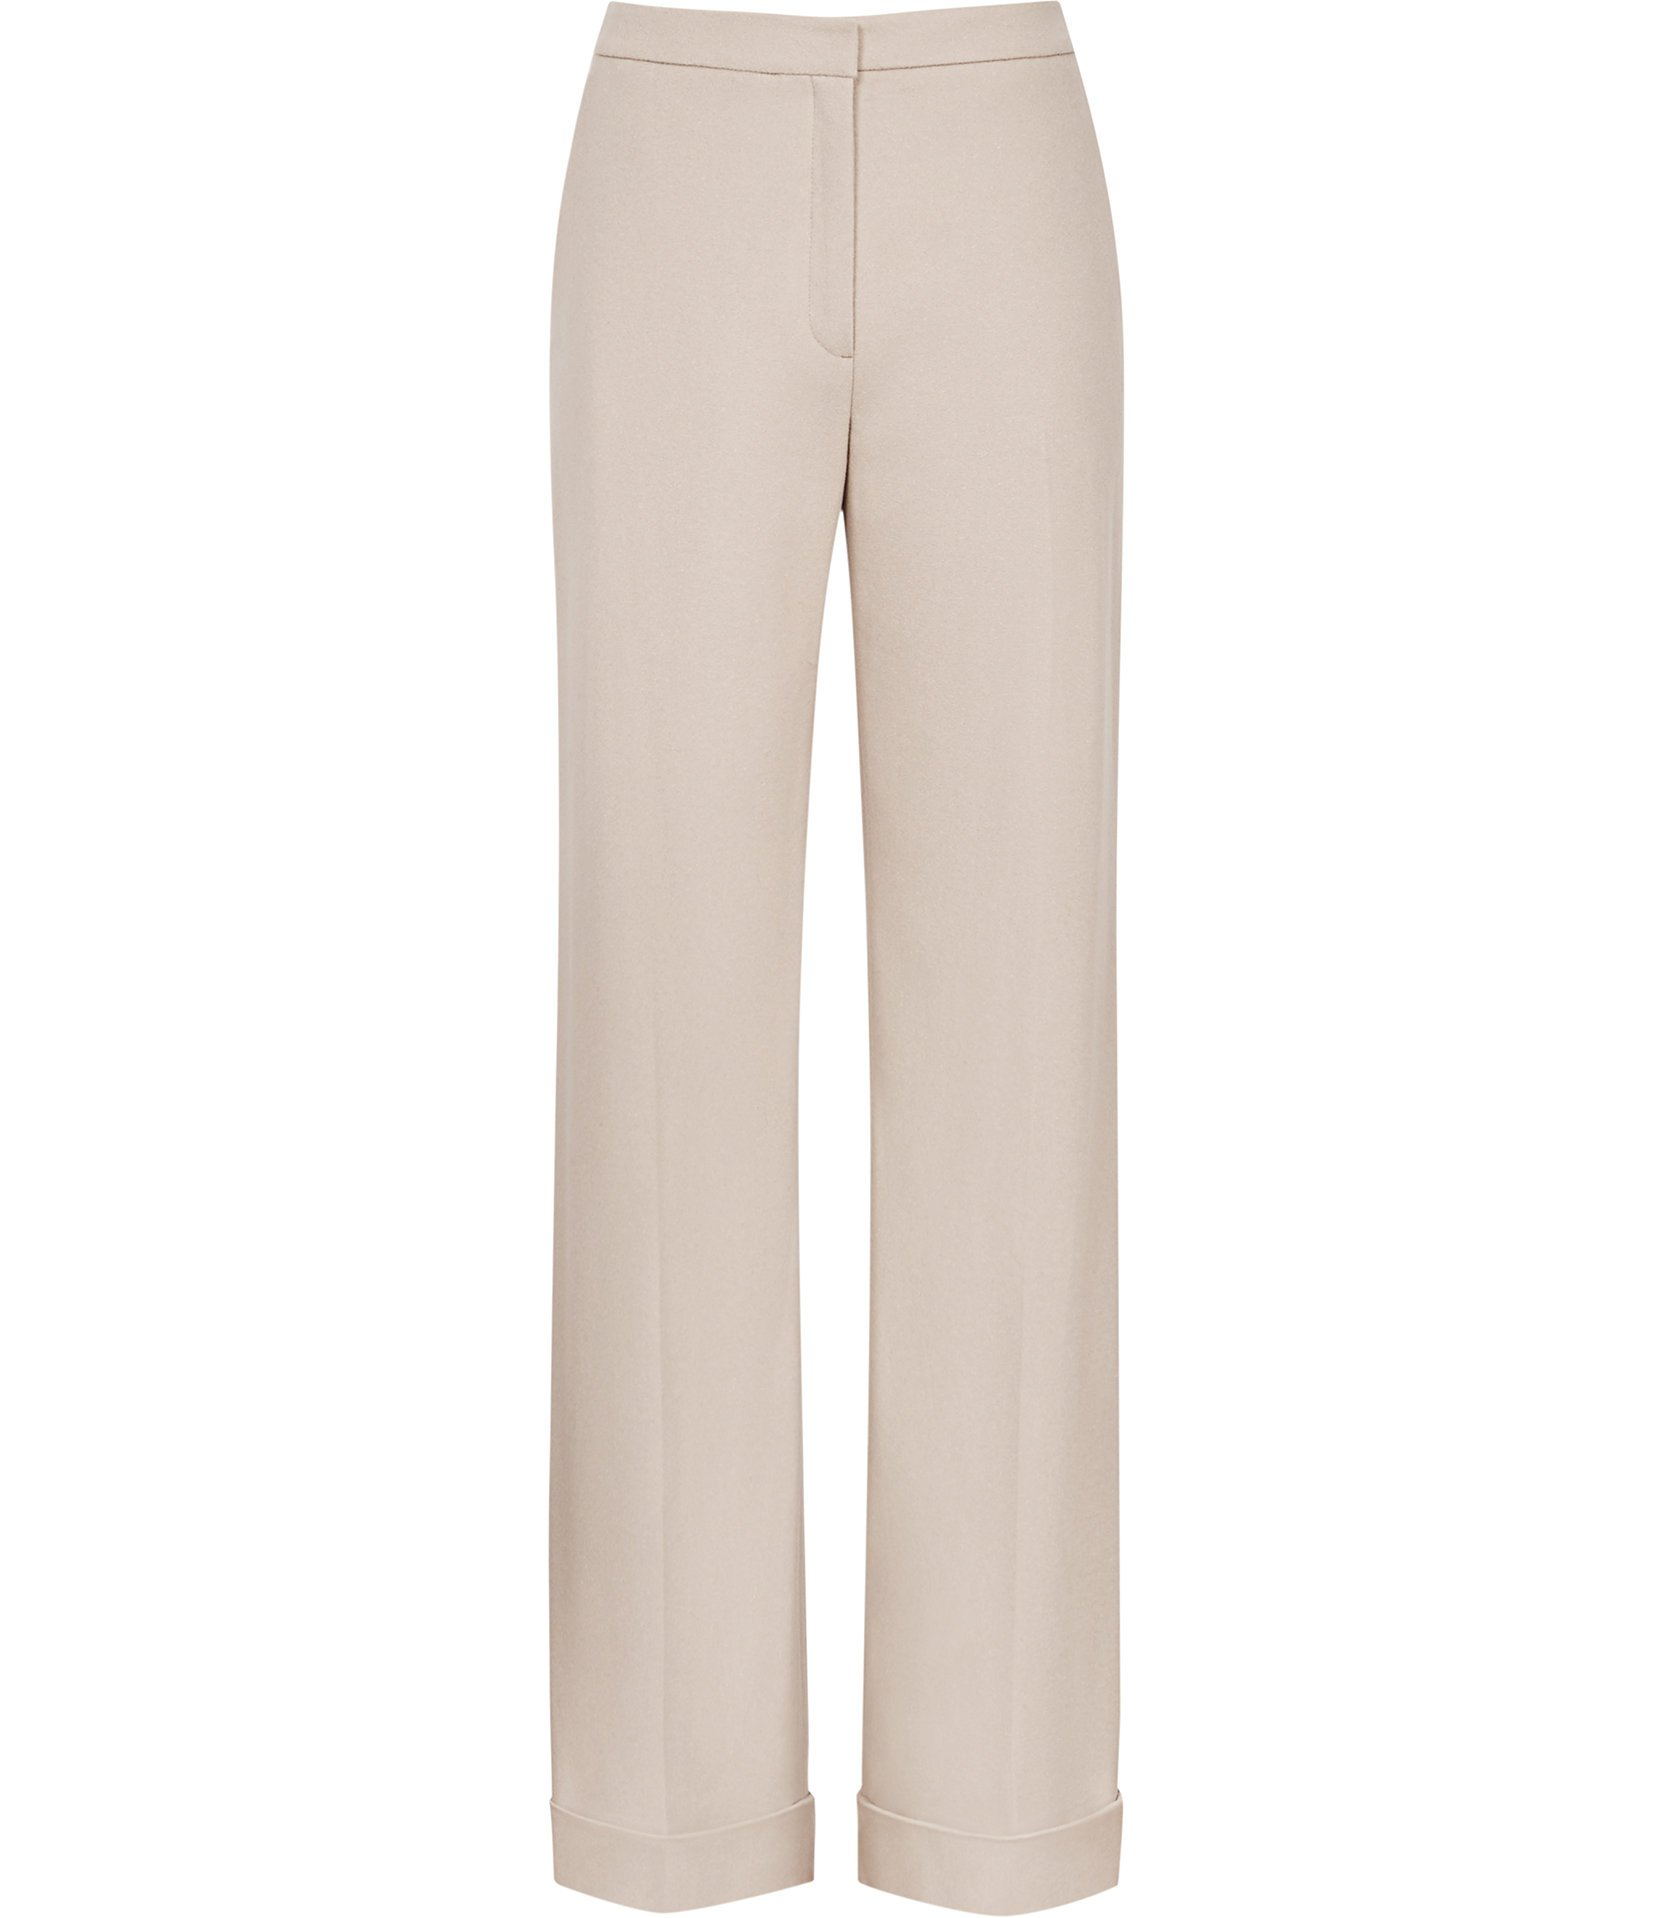 Carla Wide Leg Trousers, Dhs750.